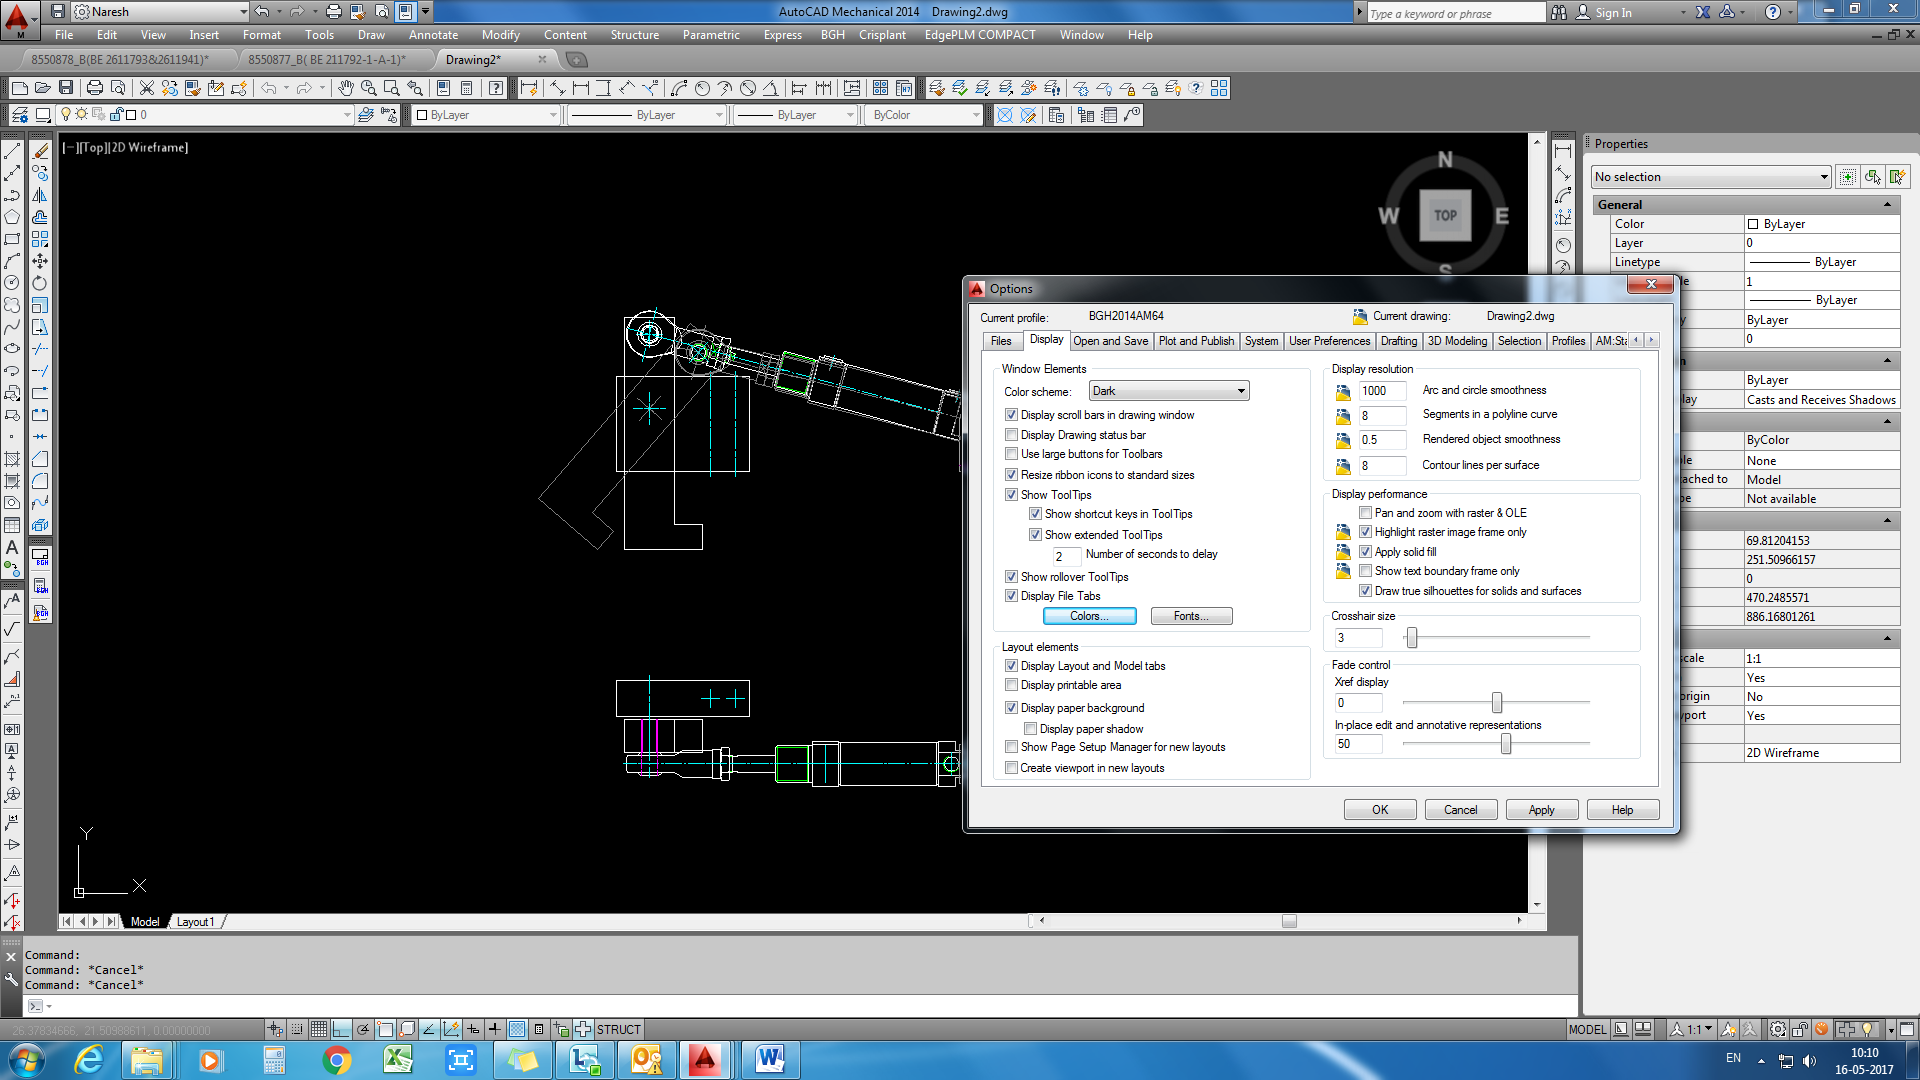 How To Change Background Color In Autocad 1